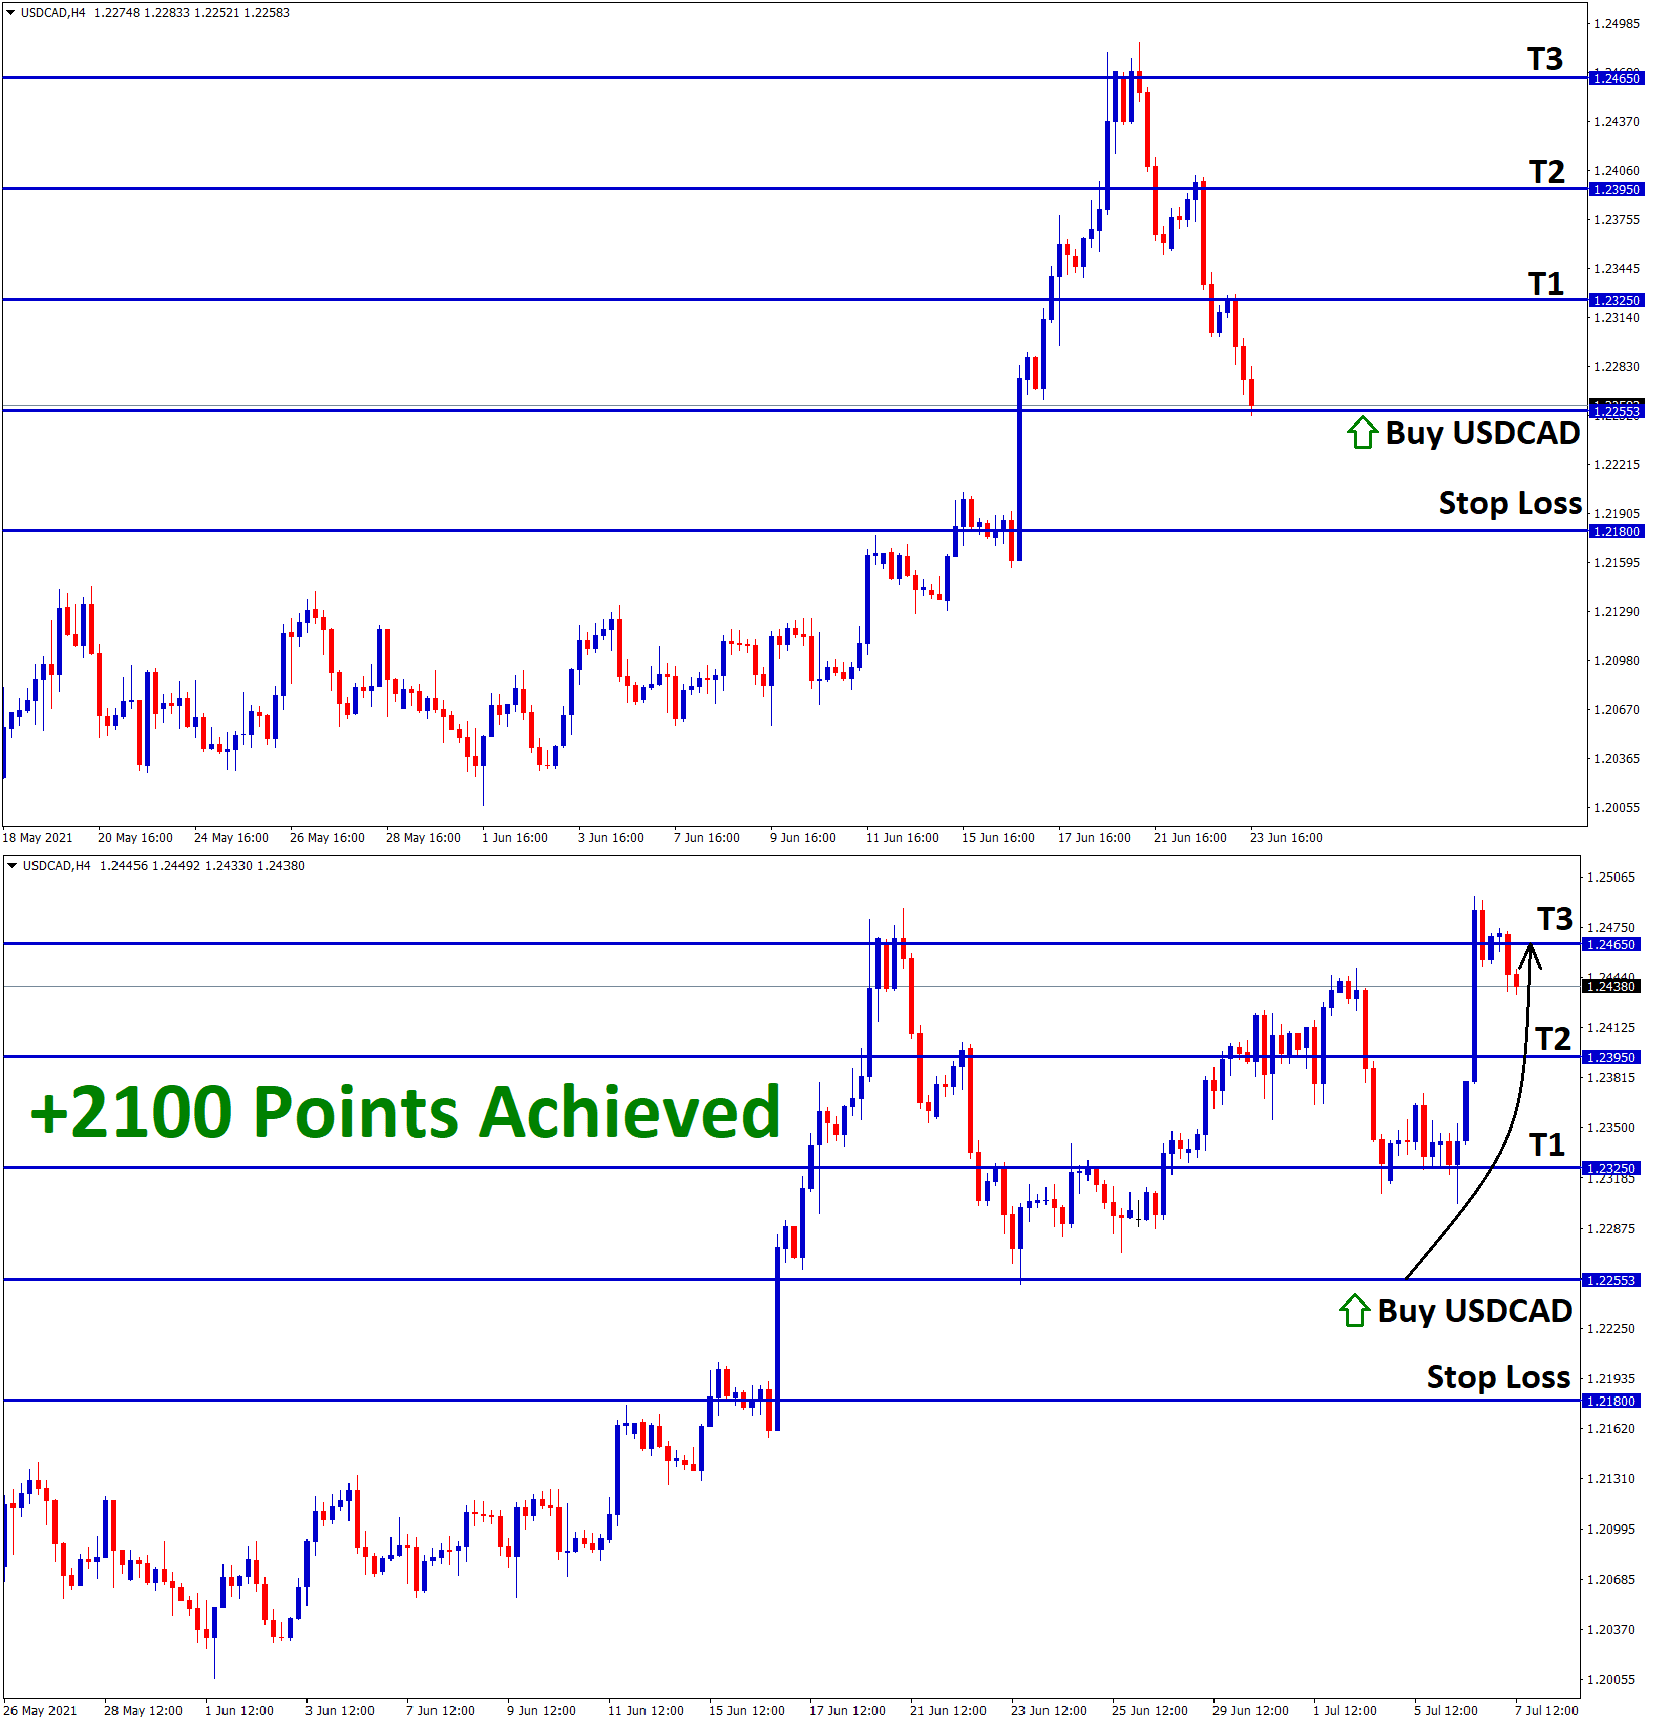 2100 points achieved USDCAD T3 result